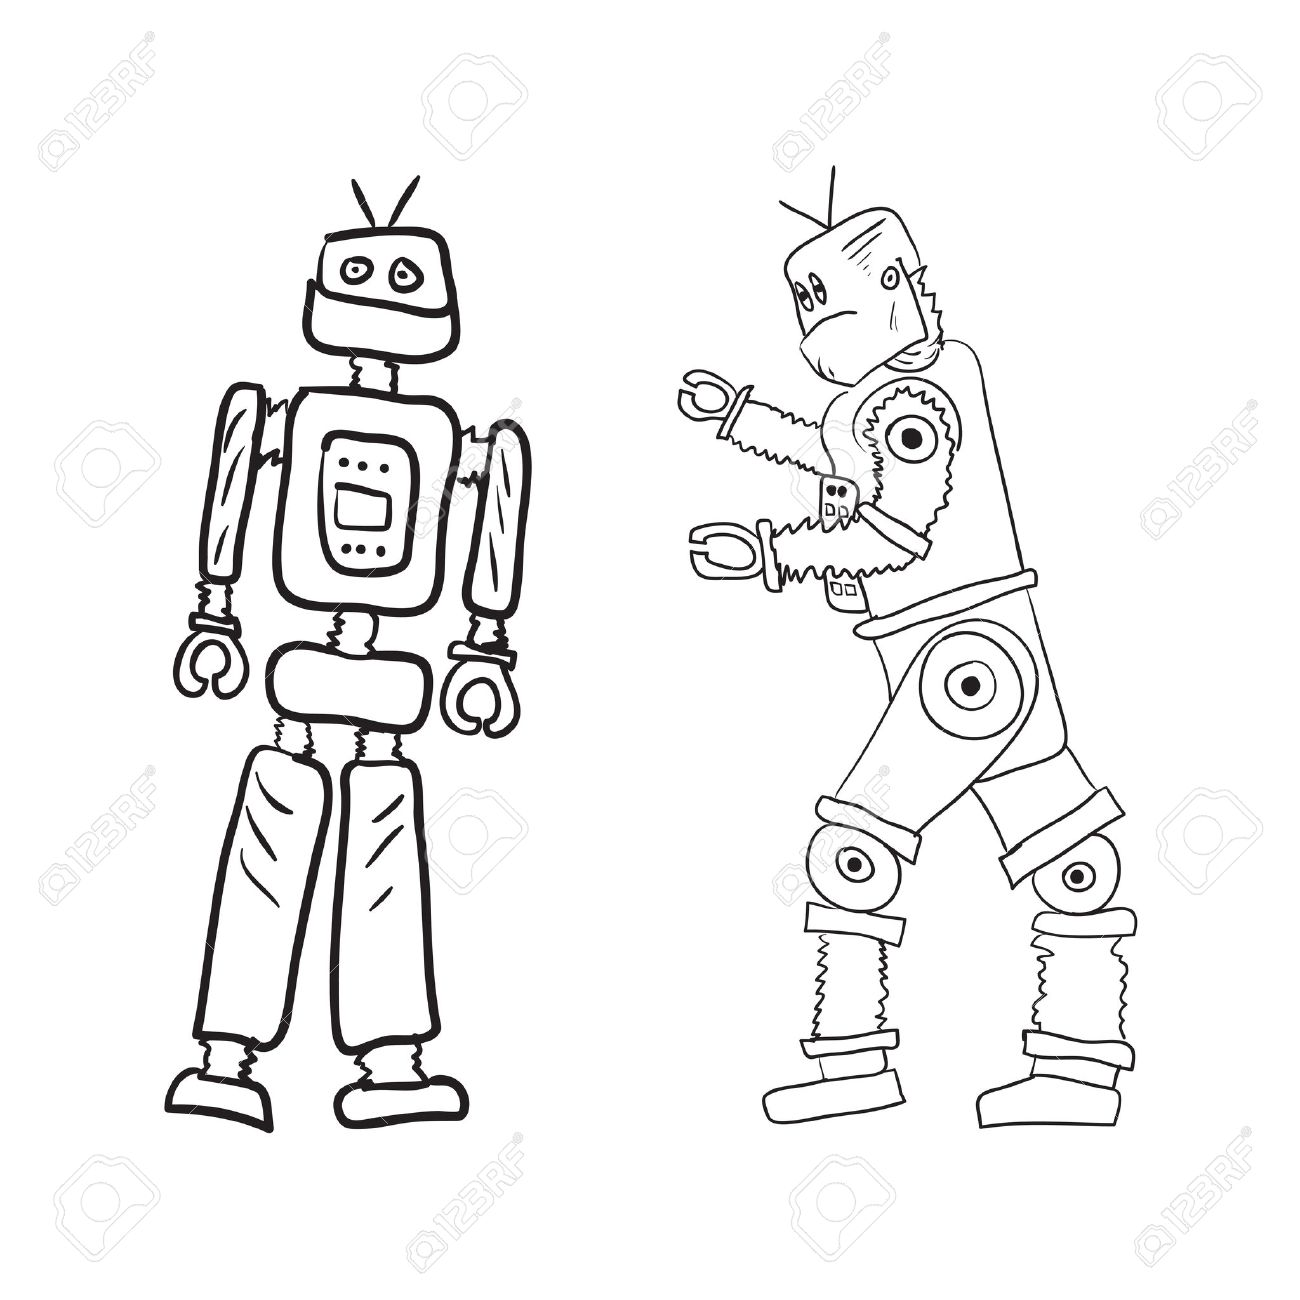 1300x1300 Vector Drawing Of Two Robots In Different Poses. Royalty Free